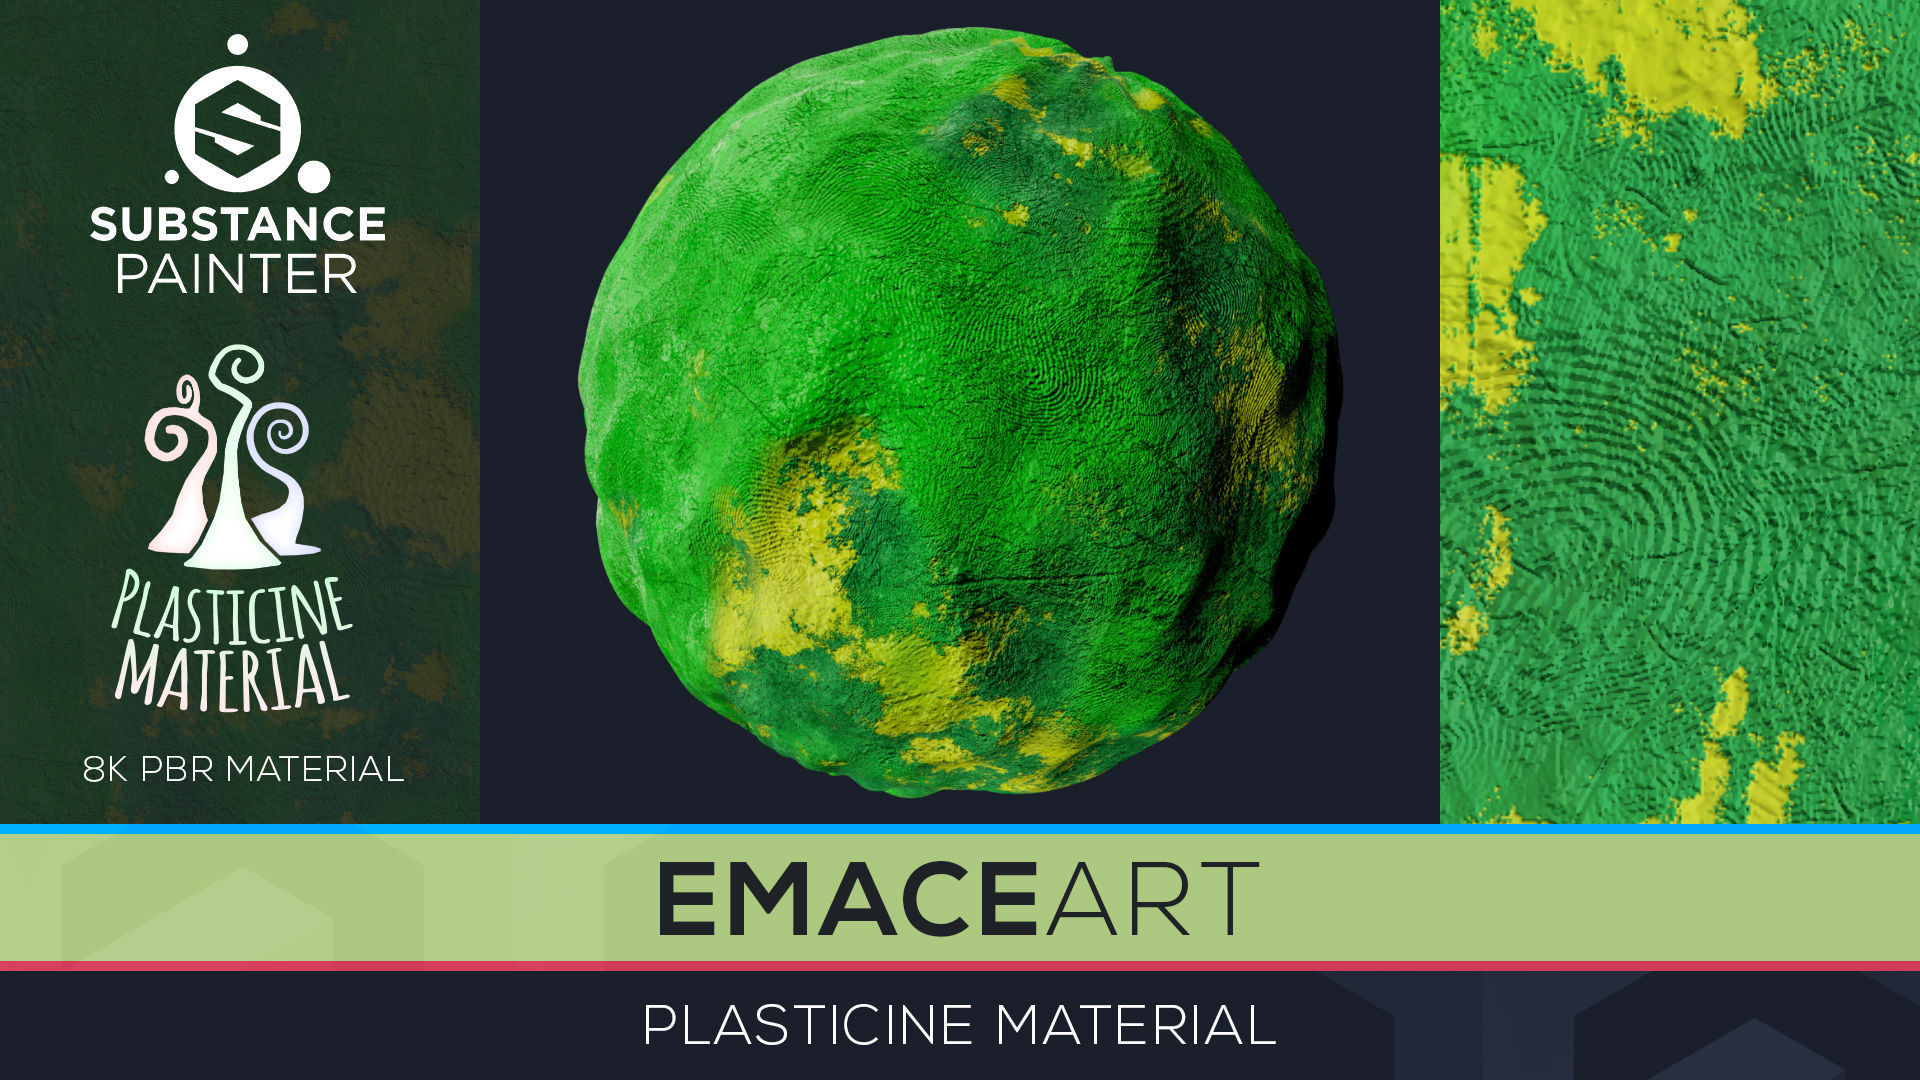 PBR Toon Plasticine sbsar Material 7 Substance Unity Material | Texture